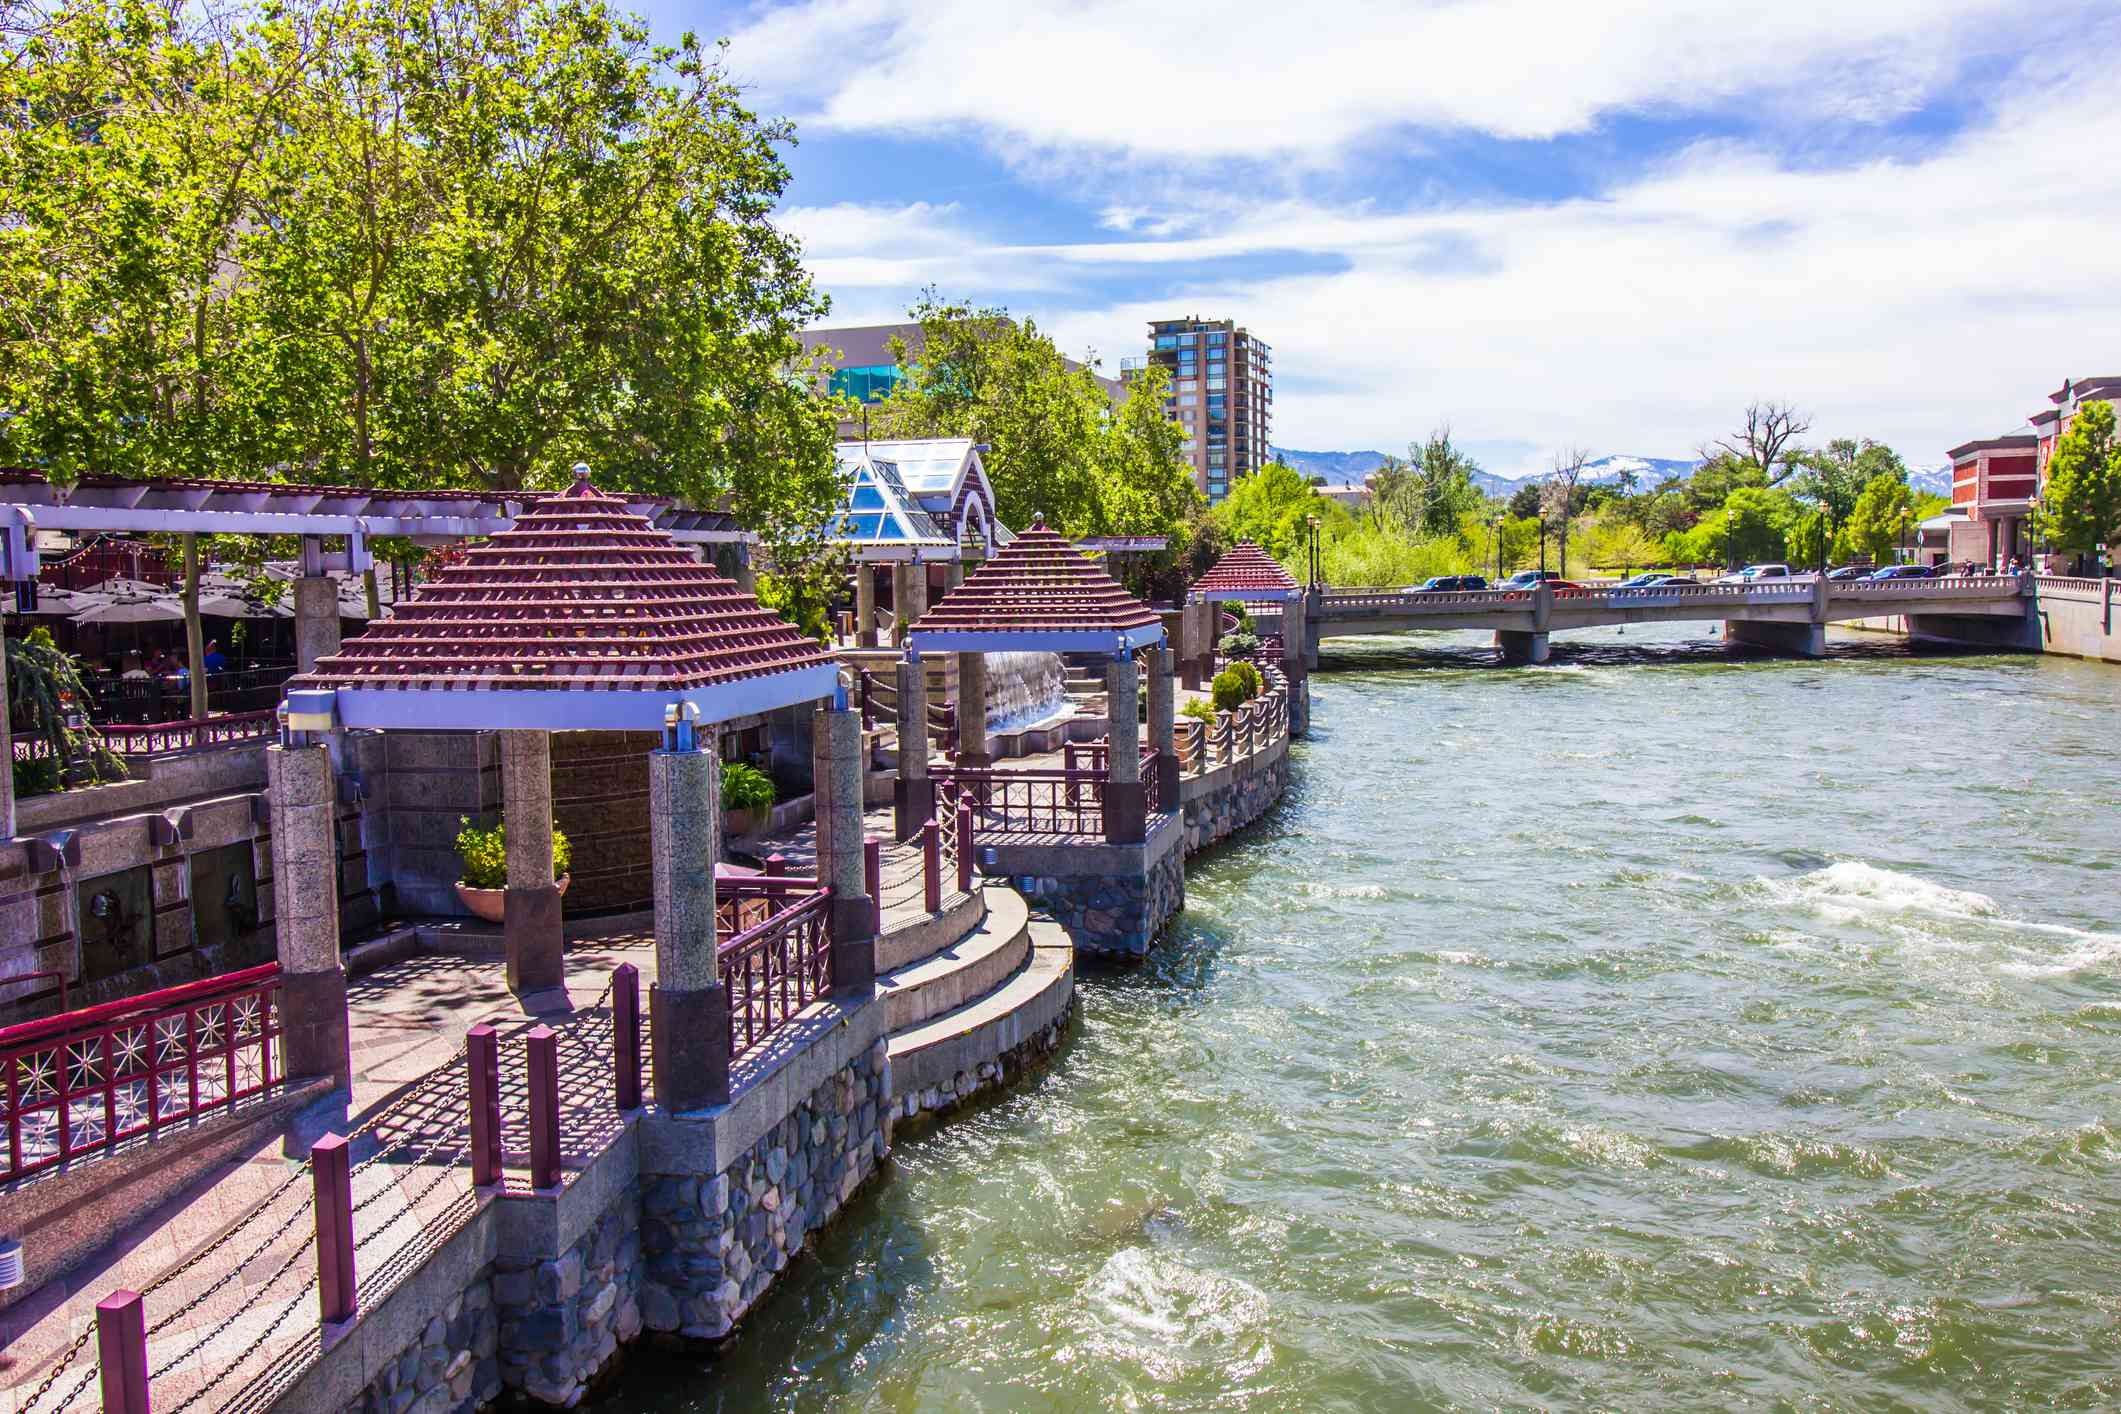 Colorful Pavilions On River Walk On Truckee River In Reno